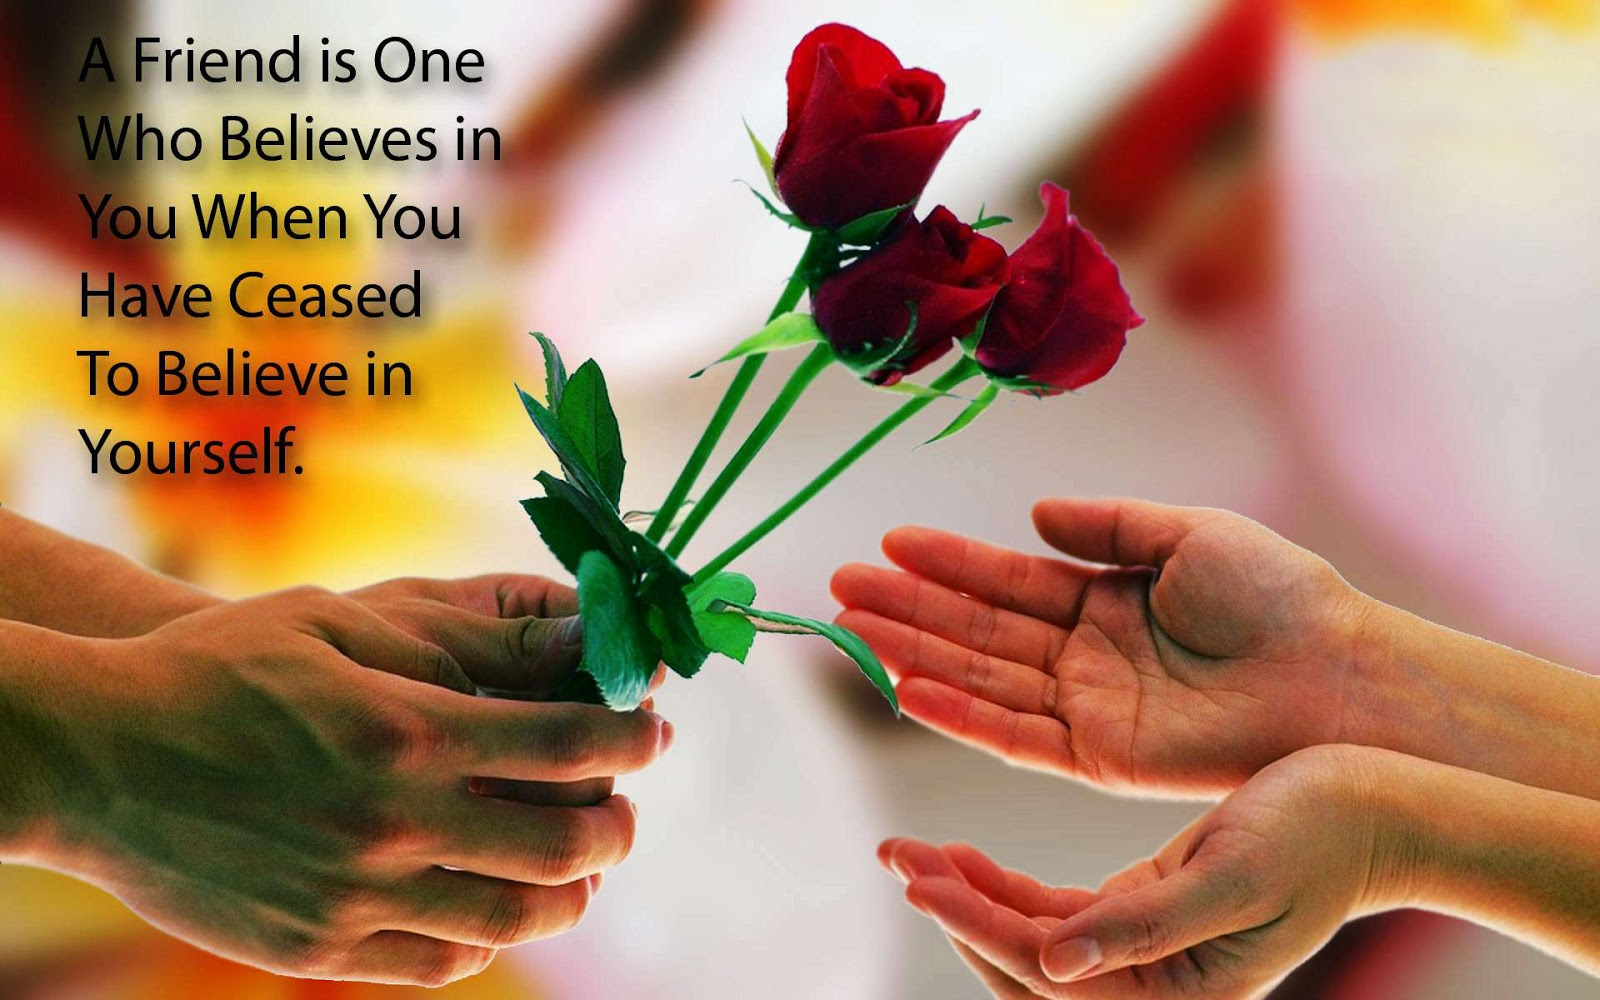 Wallpaper download love and friendship - Friendship Wallpapers